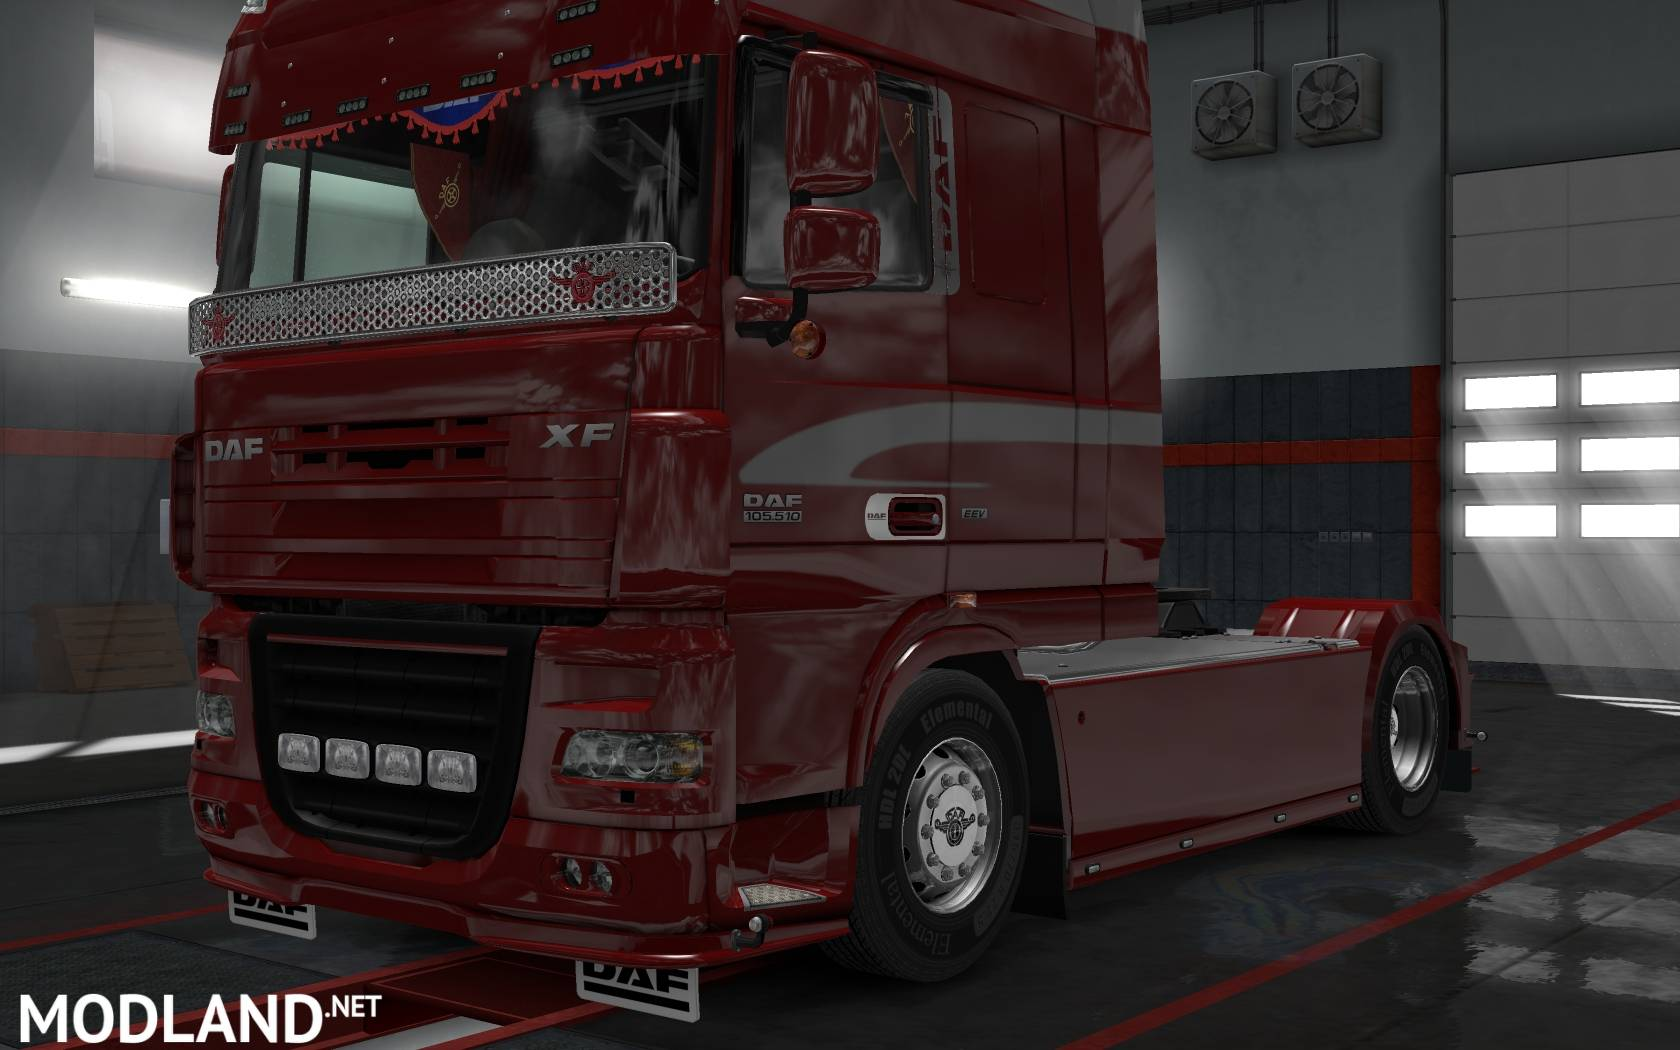 DAF XF 105 by vad&k (1 28 х) mod for ETS 2